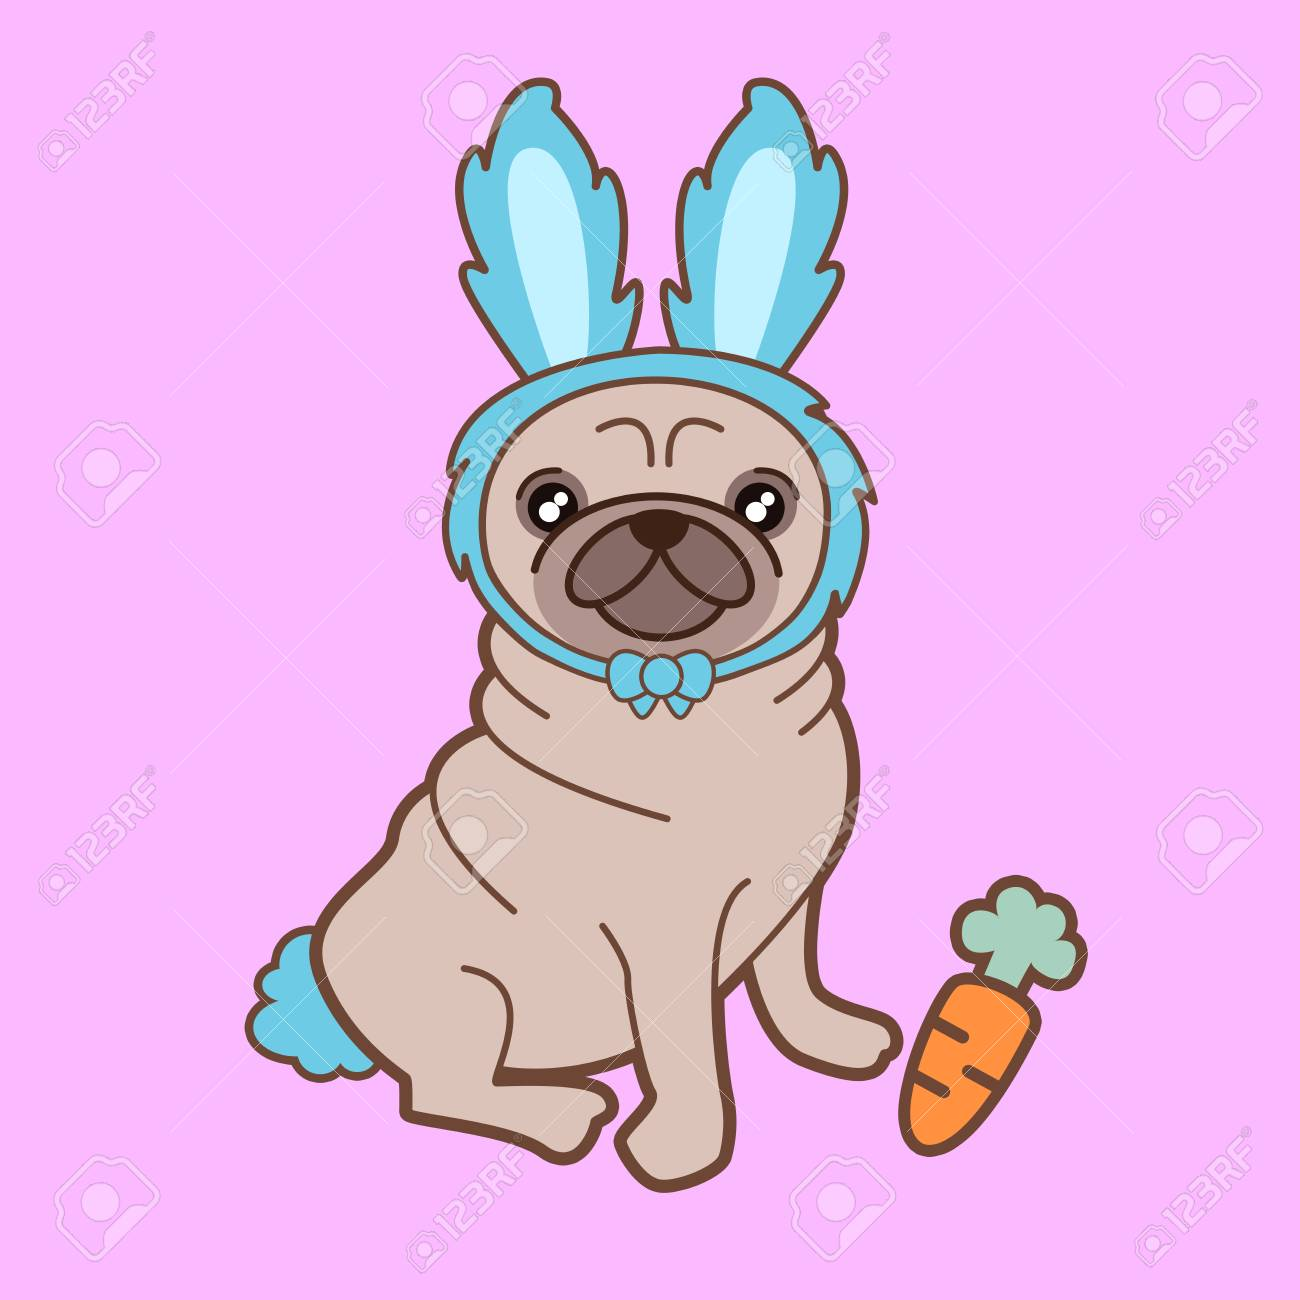 Popular Tiny Chubby Adorable Dog - 100735234-kawaii-illustration-of-a-cute-little-chubby-pug-dog-in-a-tiny-bunny-costume-how-adorable-is-this-  Best Photo Reference_151168  .jpg